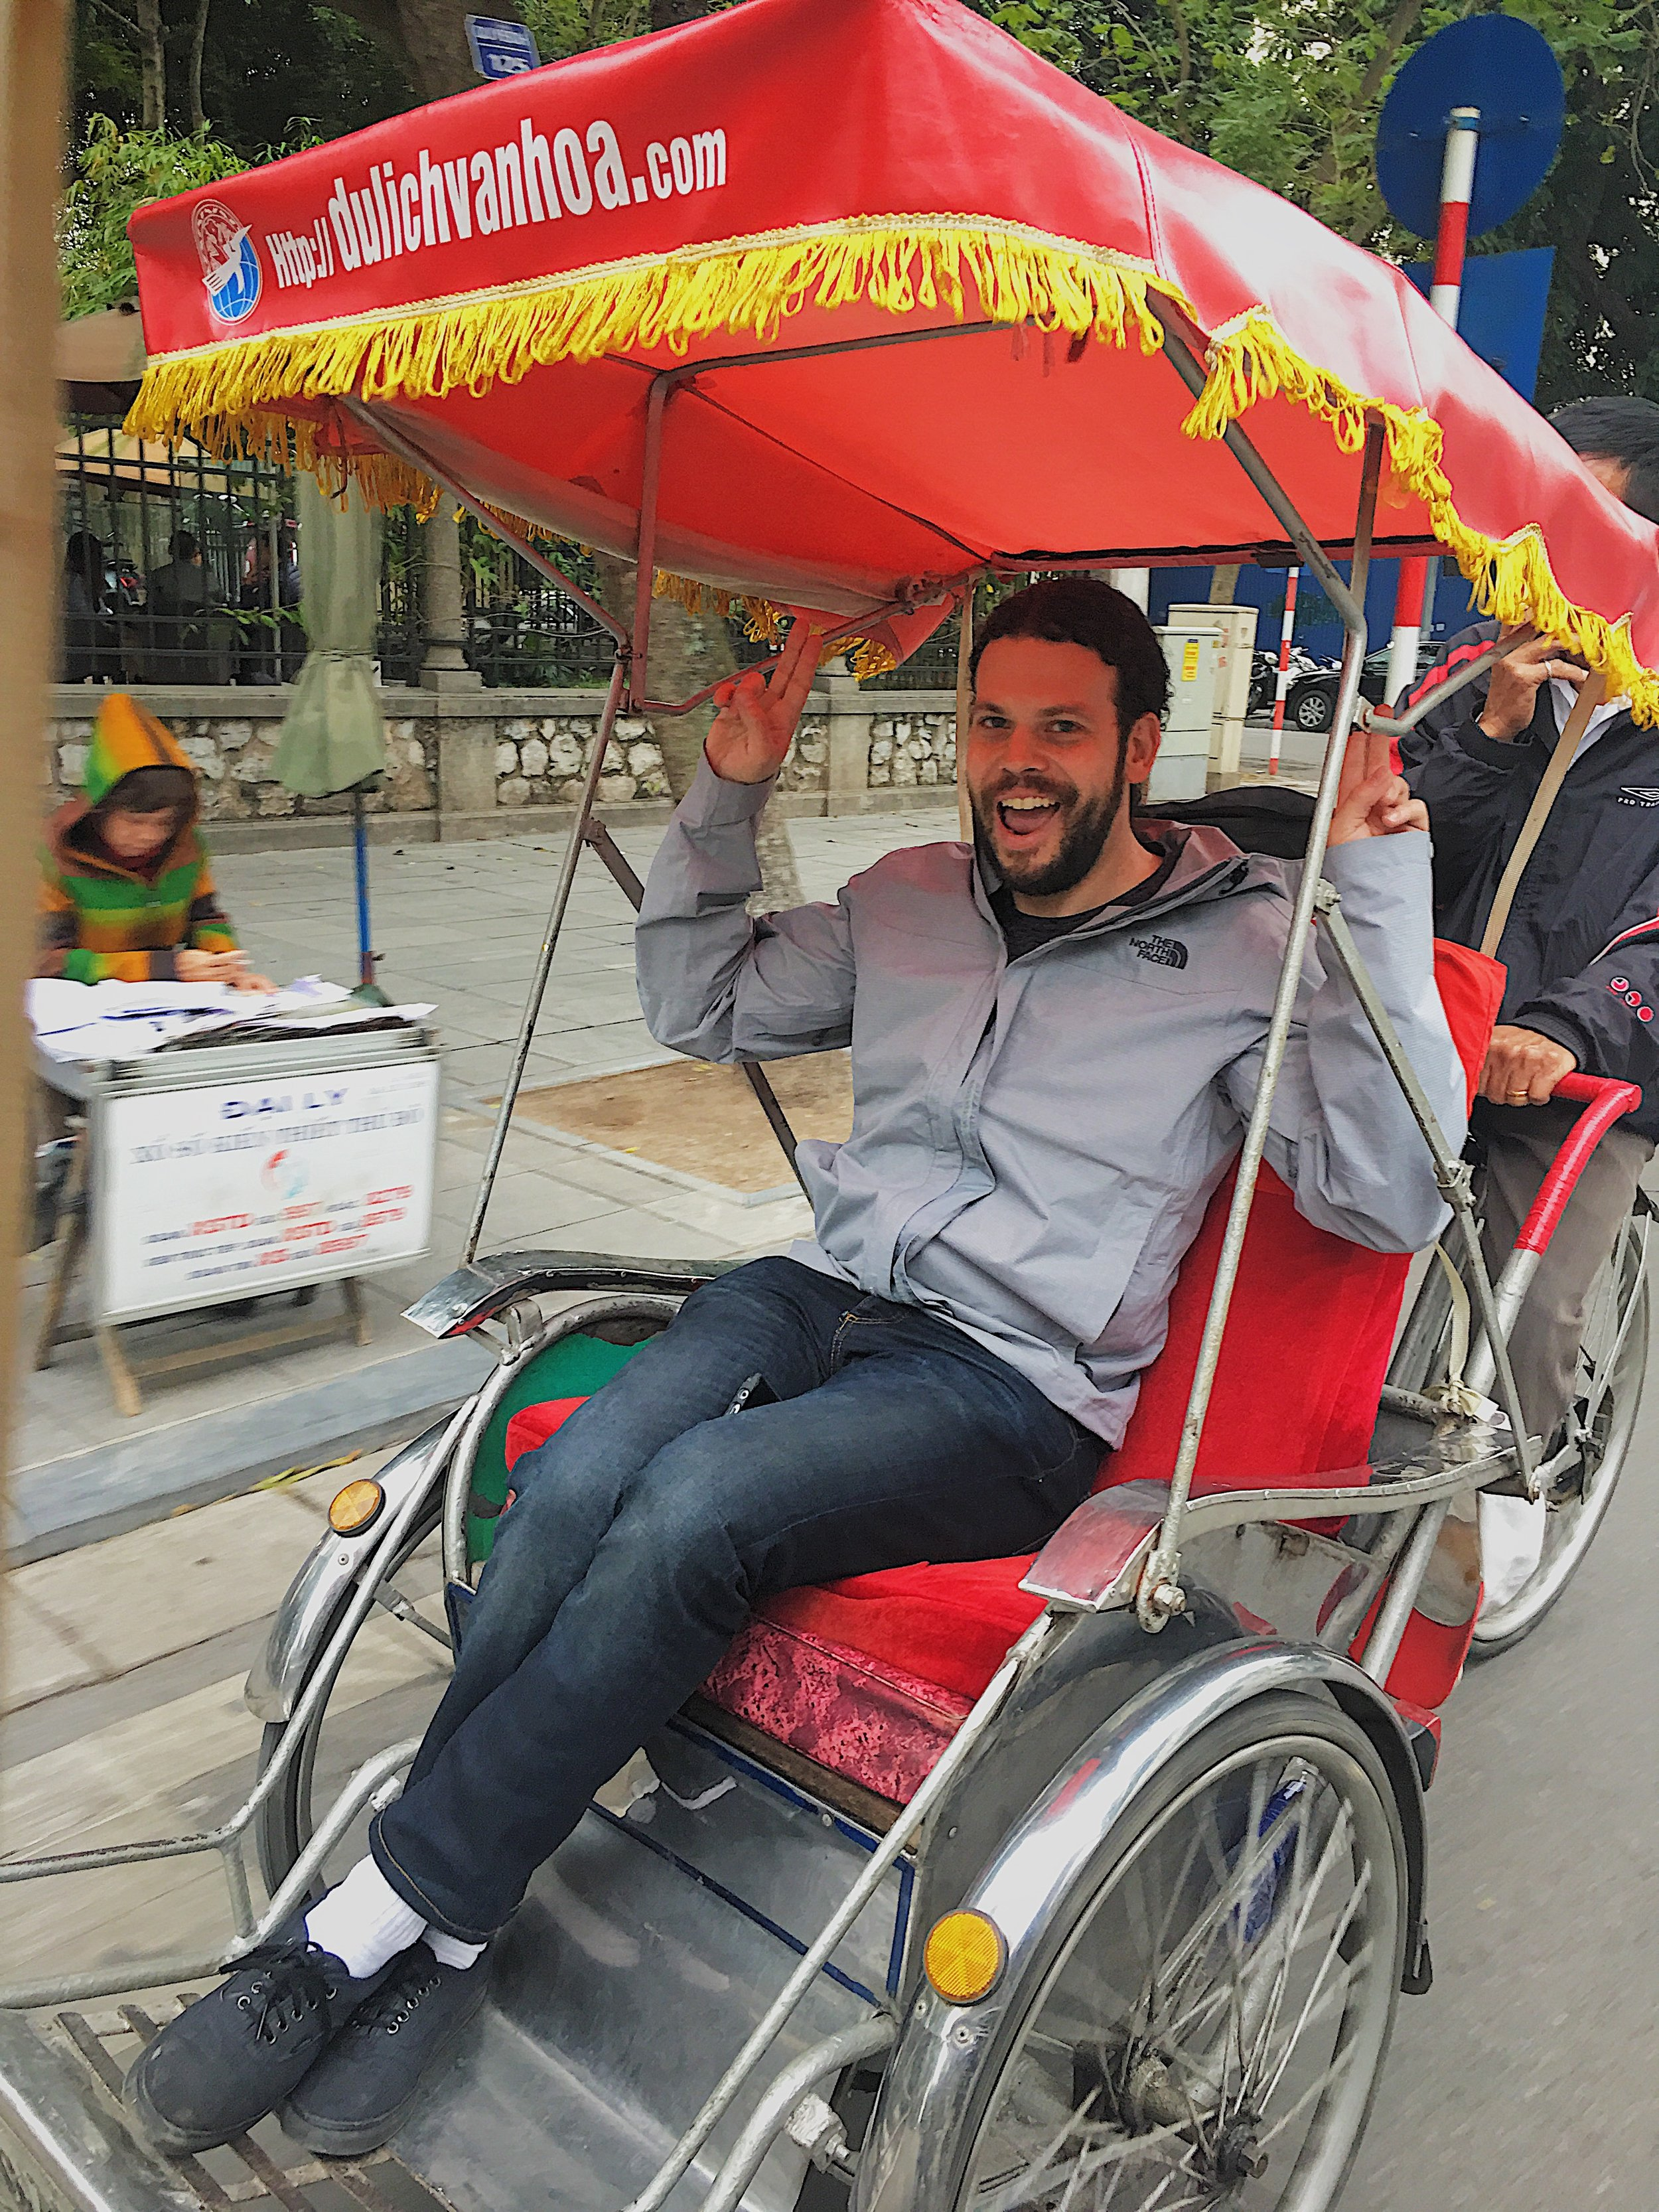 - Wondertip: The absolute best tour to do in Hanoi is through the website, VietnambyVespa.com. The gentlemen you want to ask for is Ha. He knows all about the history of Hanoi and, being a foodie, will take you to all the best Vietnamese street food you will ever have.